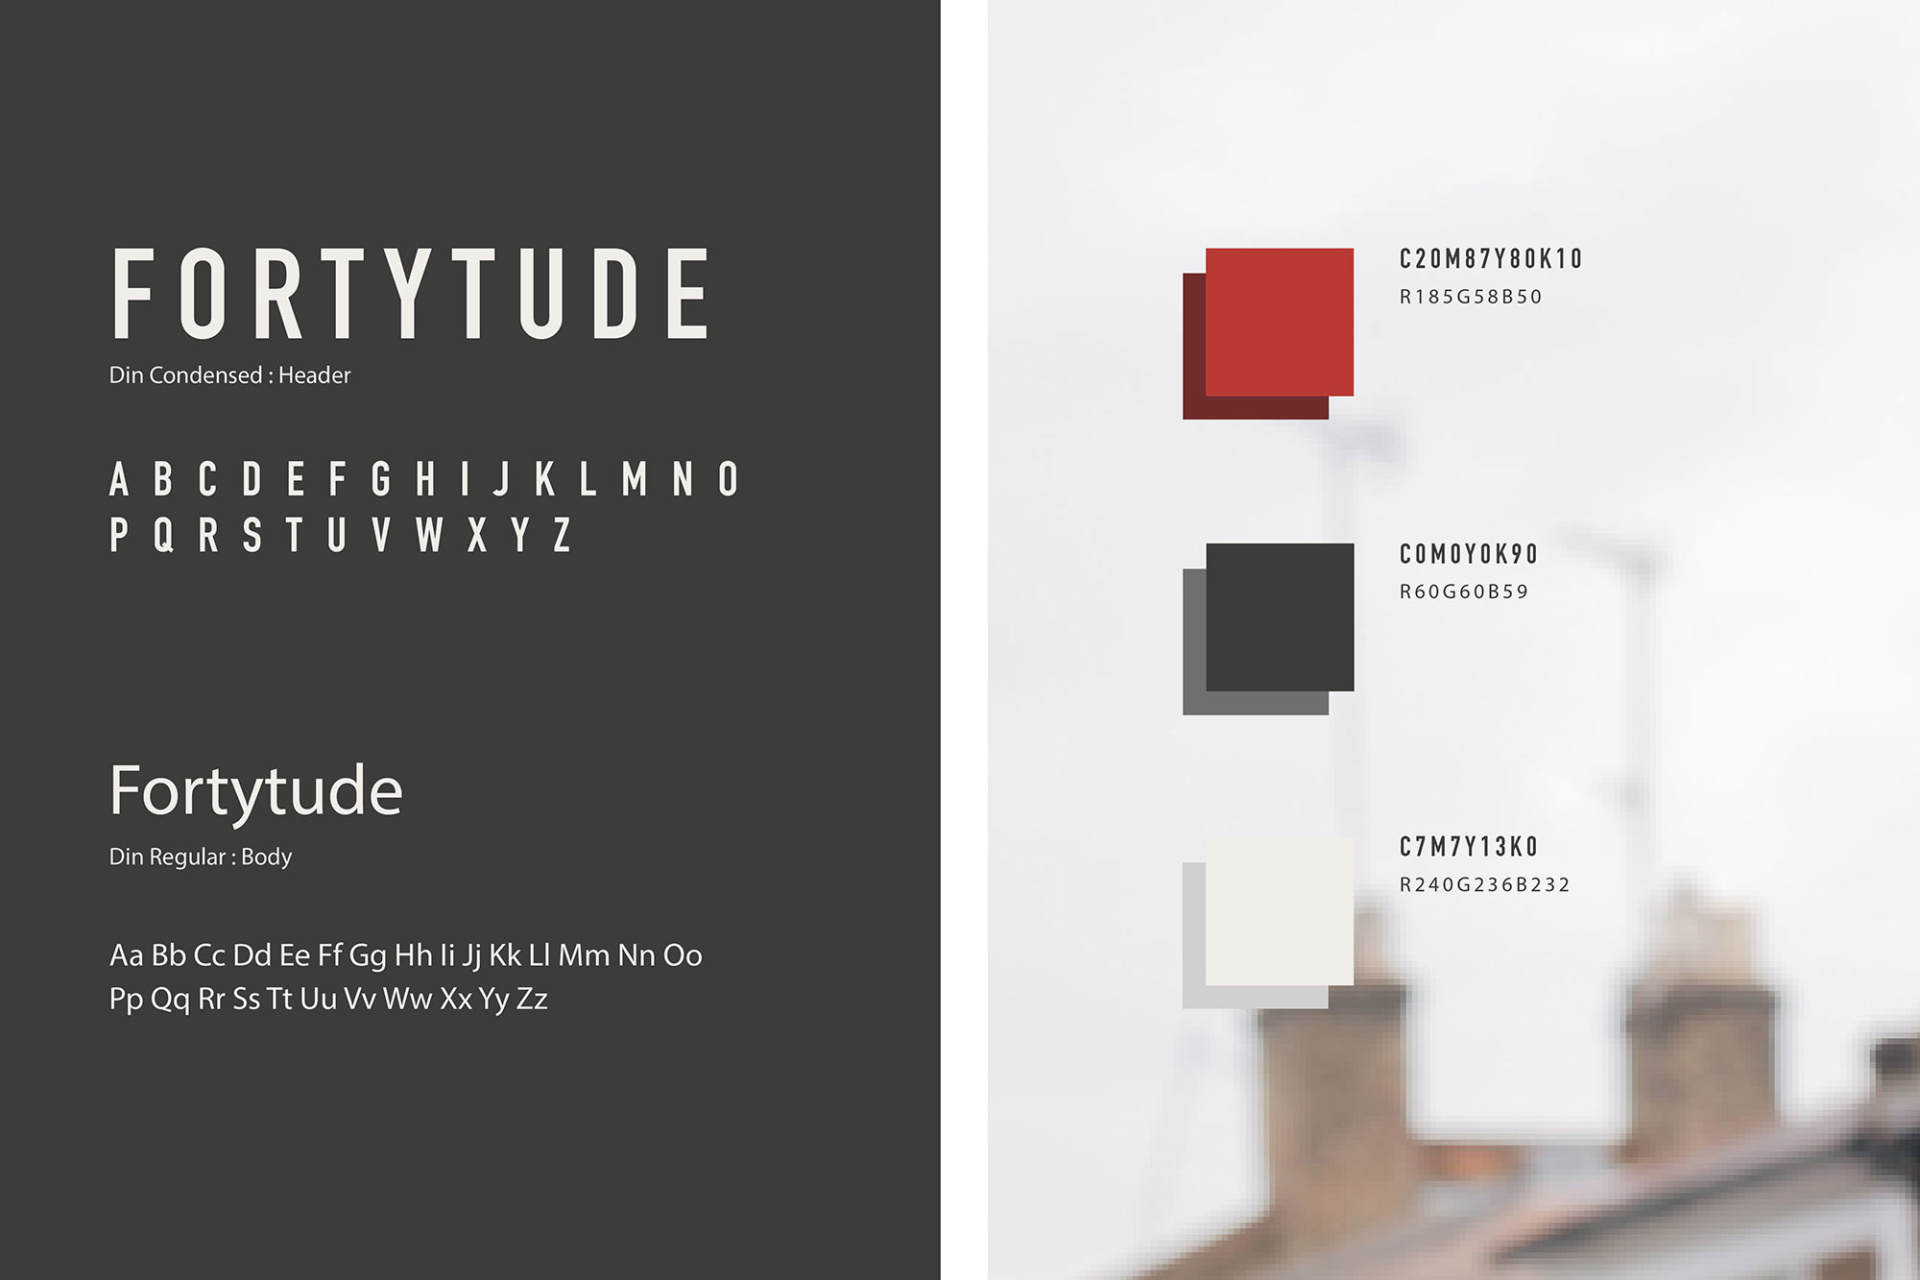 Fortytude brand identity- typeface and colours. Graphic design produced by Barefaced Studios, design agency based in Islington, North London.